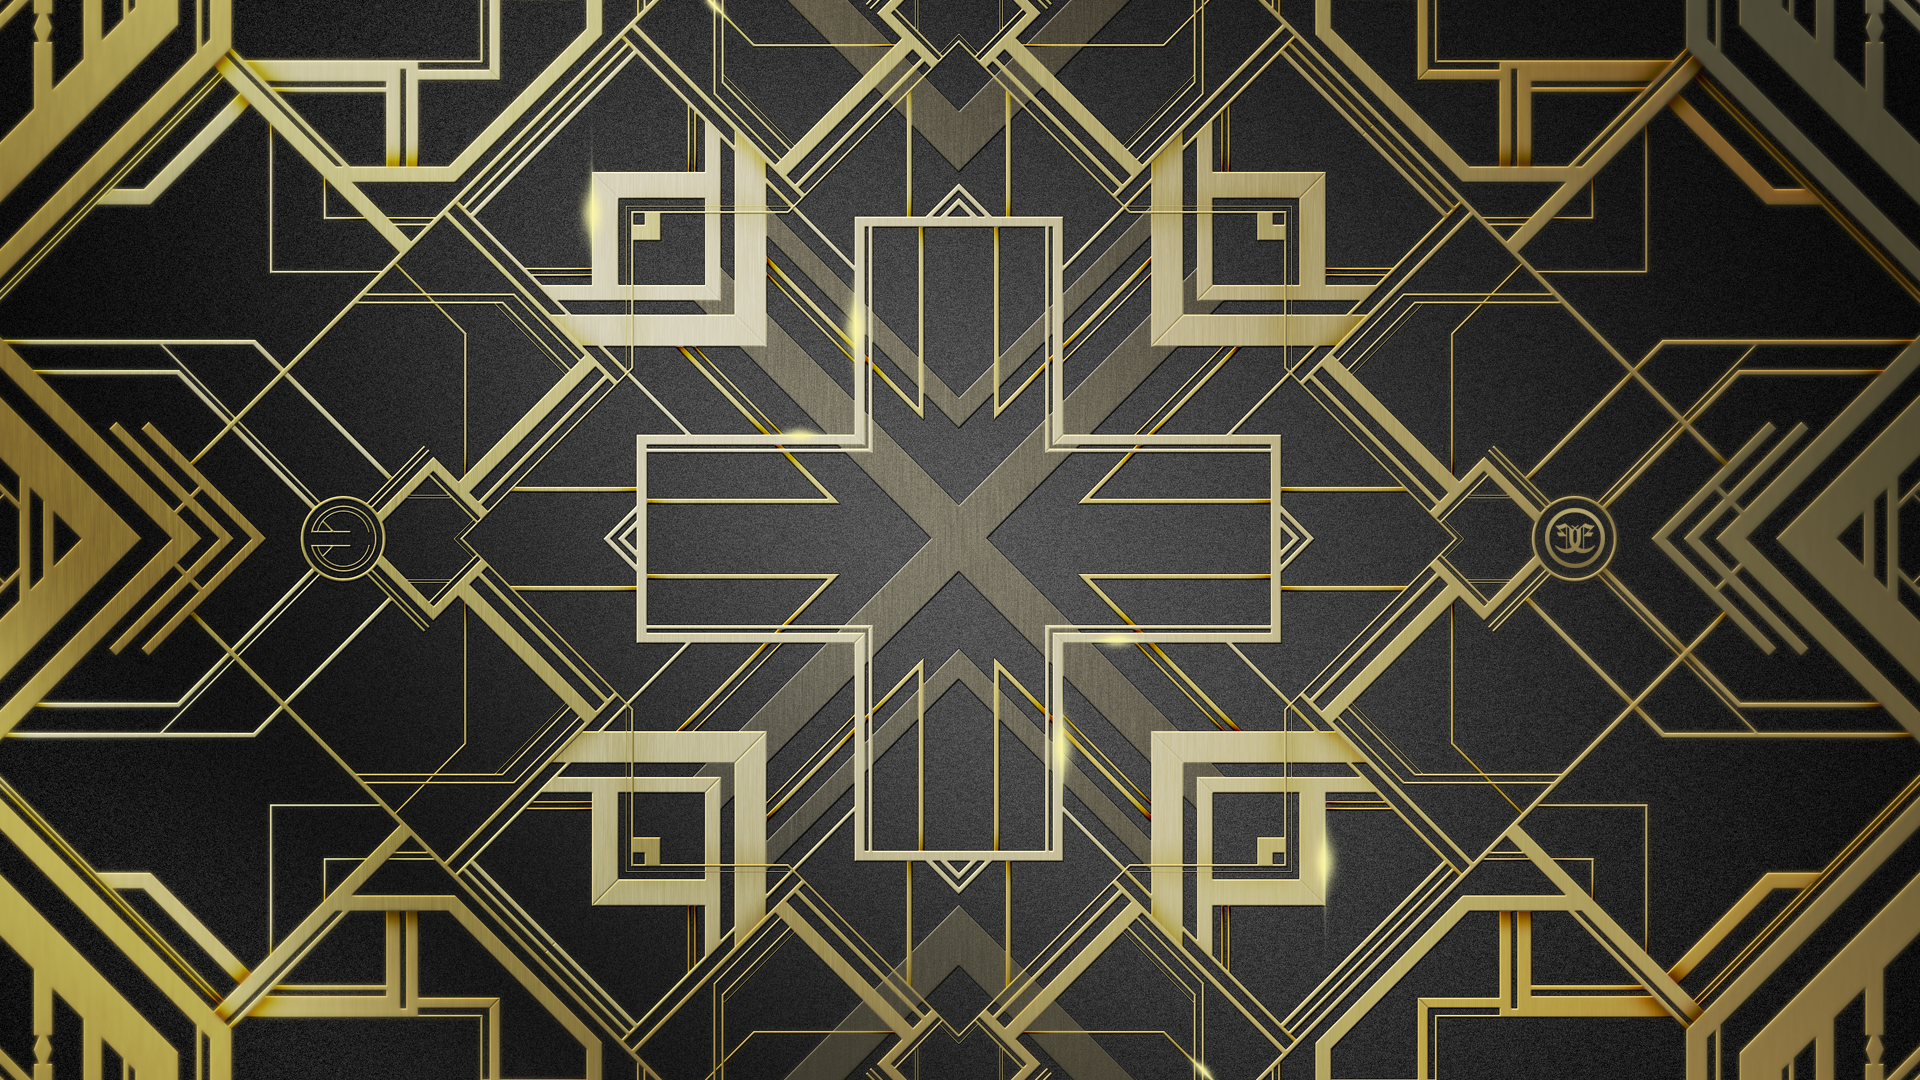 Art Deco Desktop Wallpaper Posted By Ethan Thompson